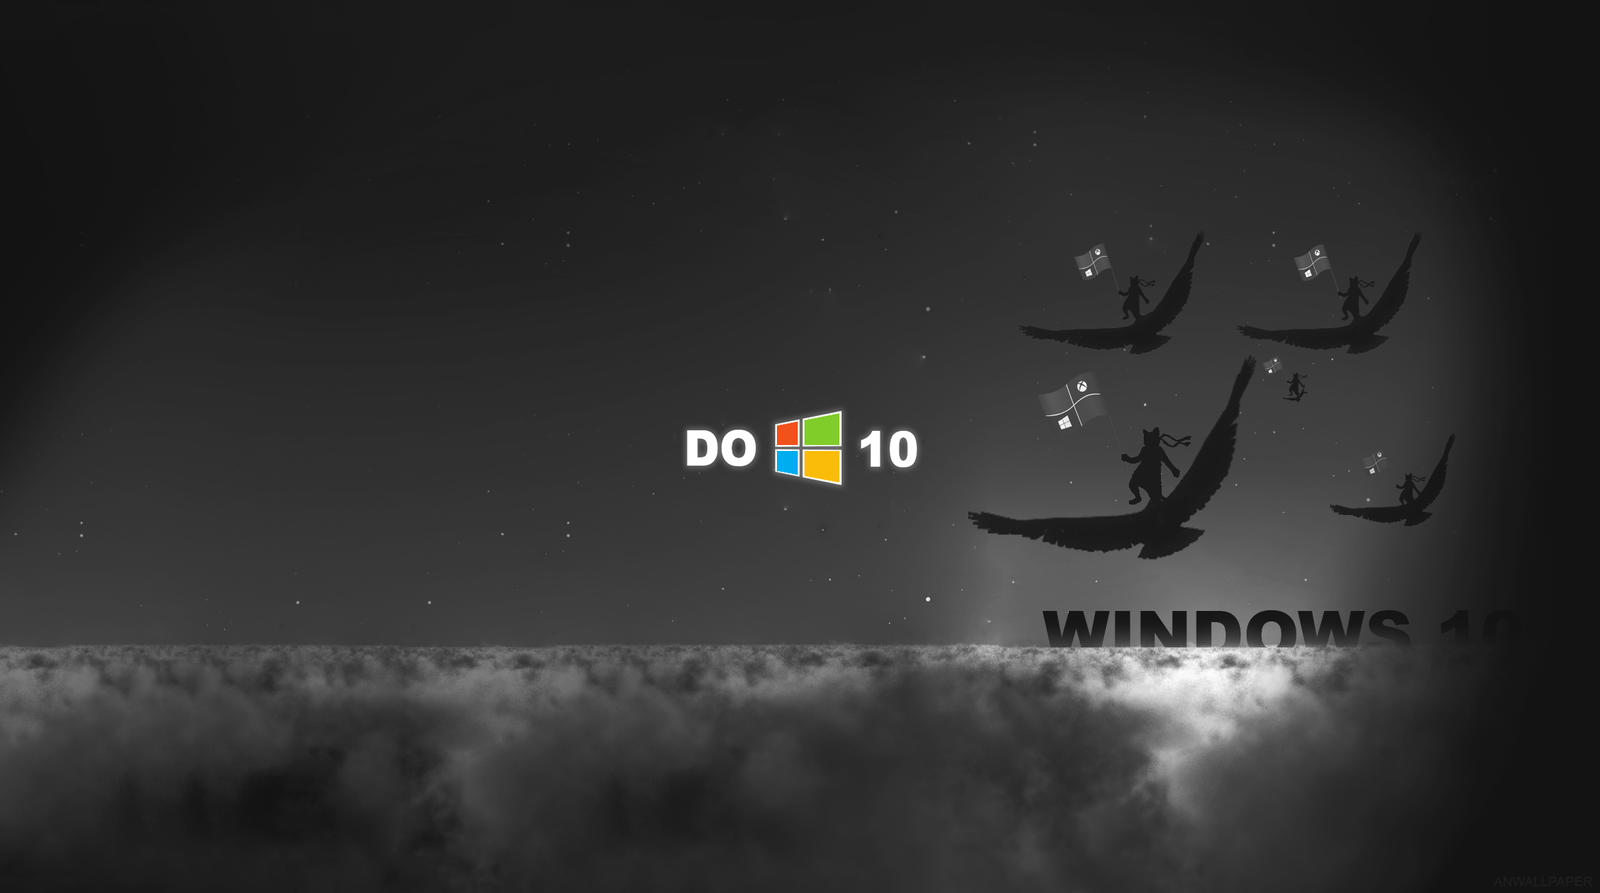 Do windows 10 wallpaper v3 by zhalovejun on deviantart